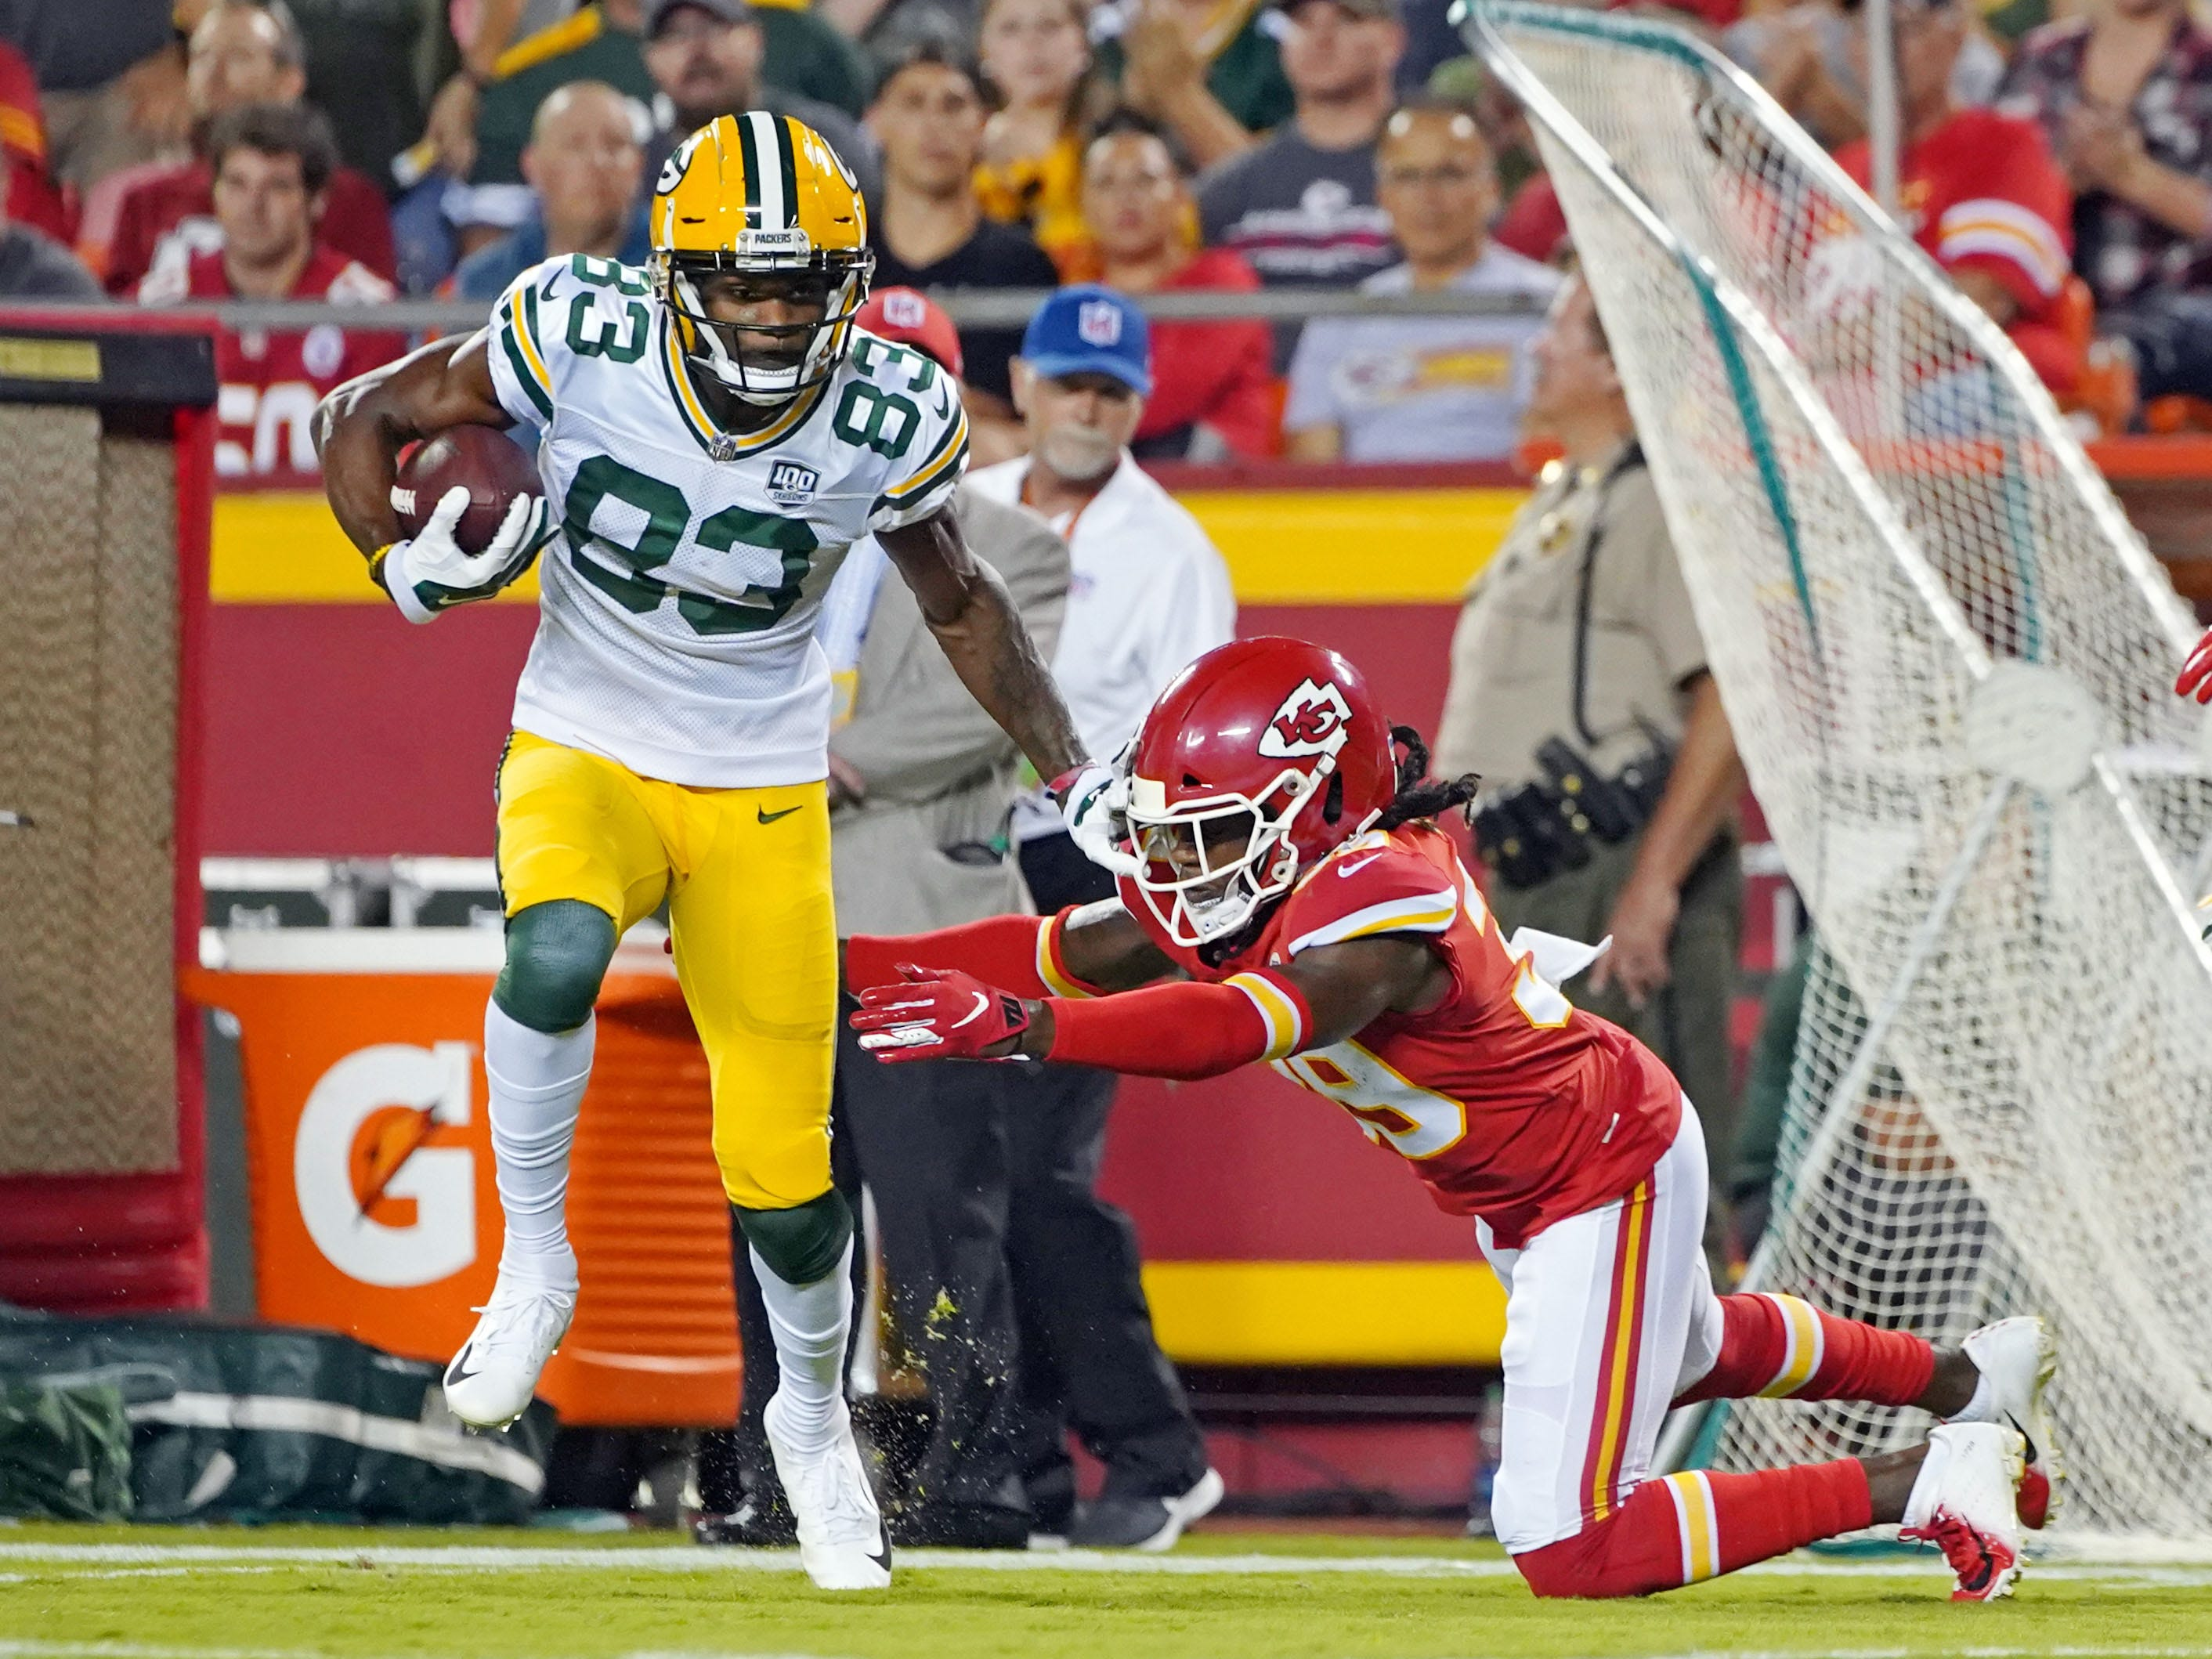 Aug 30, 2018; Kansas City, MO, USA; Green Bay Packers wide receiver Marquez Valdes-Scantling (83) runs against Kansas City Chiefs defensive back Tremon Smith (39) in the first half at Arrowhead Stadium. Sports